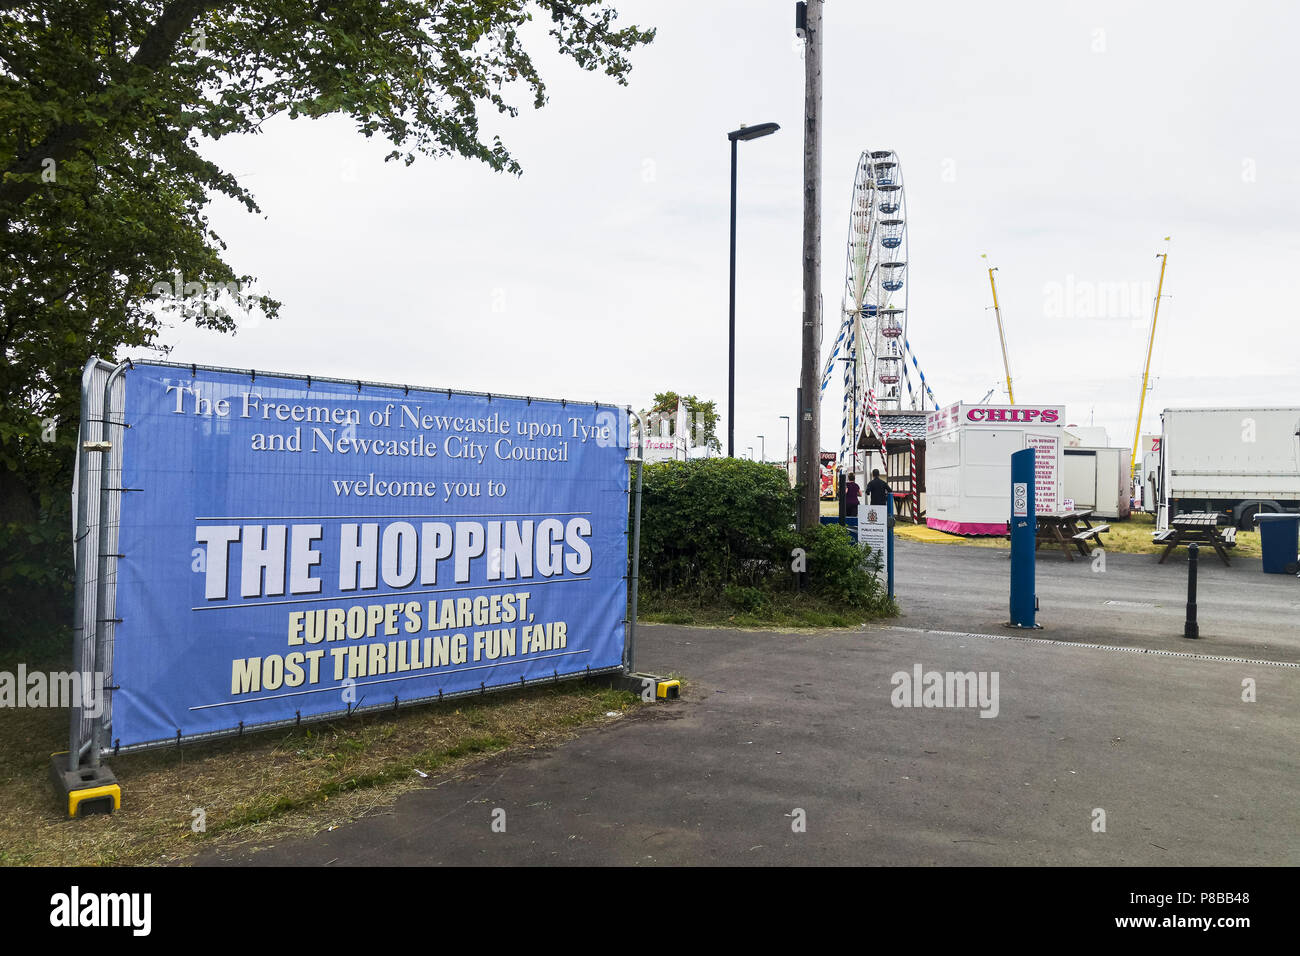 Hopping annual funfair at Newcastle upon Tyne, UK - Stock Image